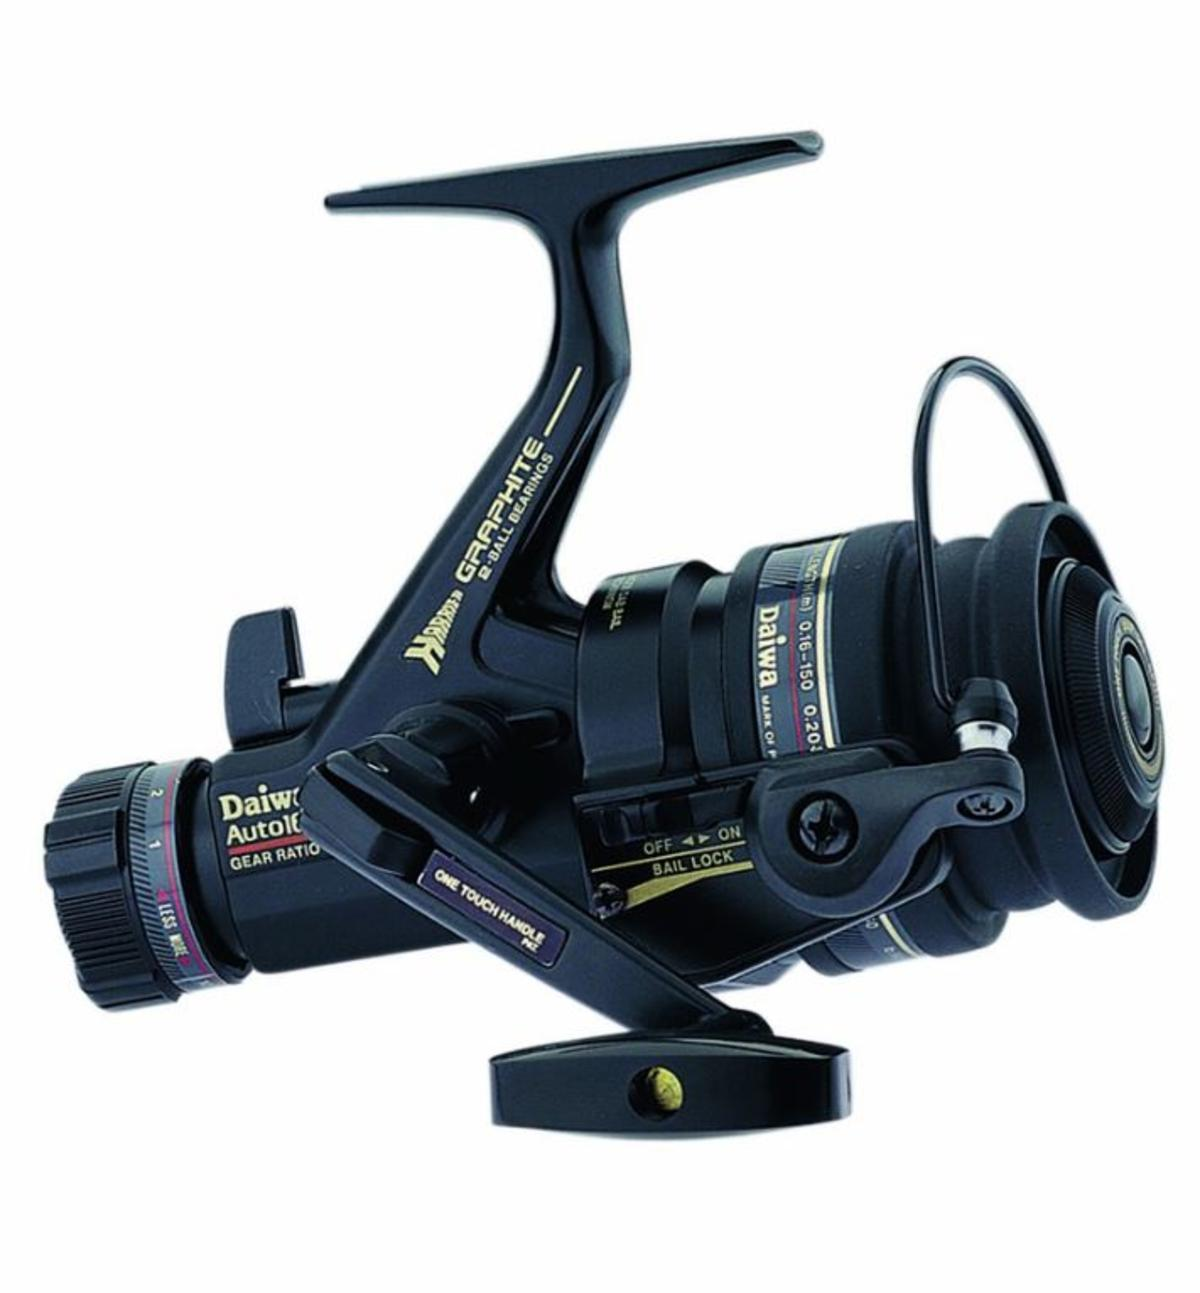 Daiwa 1657DM Auto Match Deluxe Fishing Reel - 1657DM